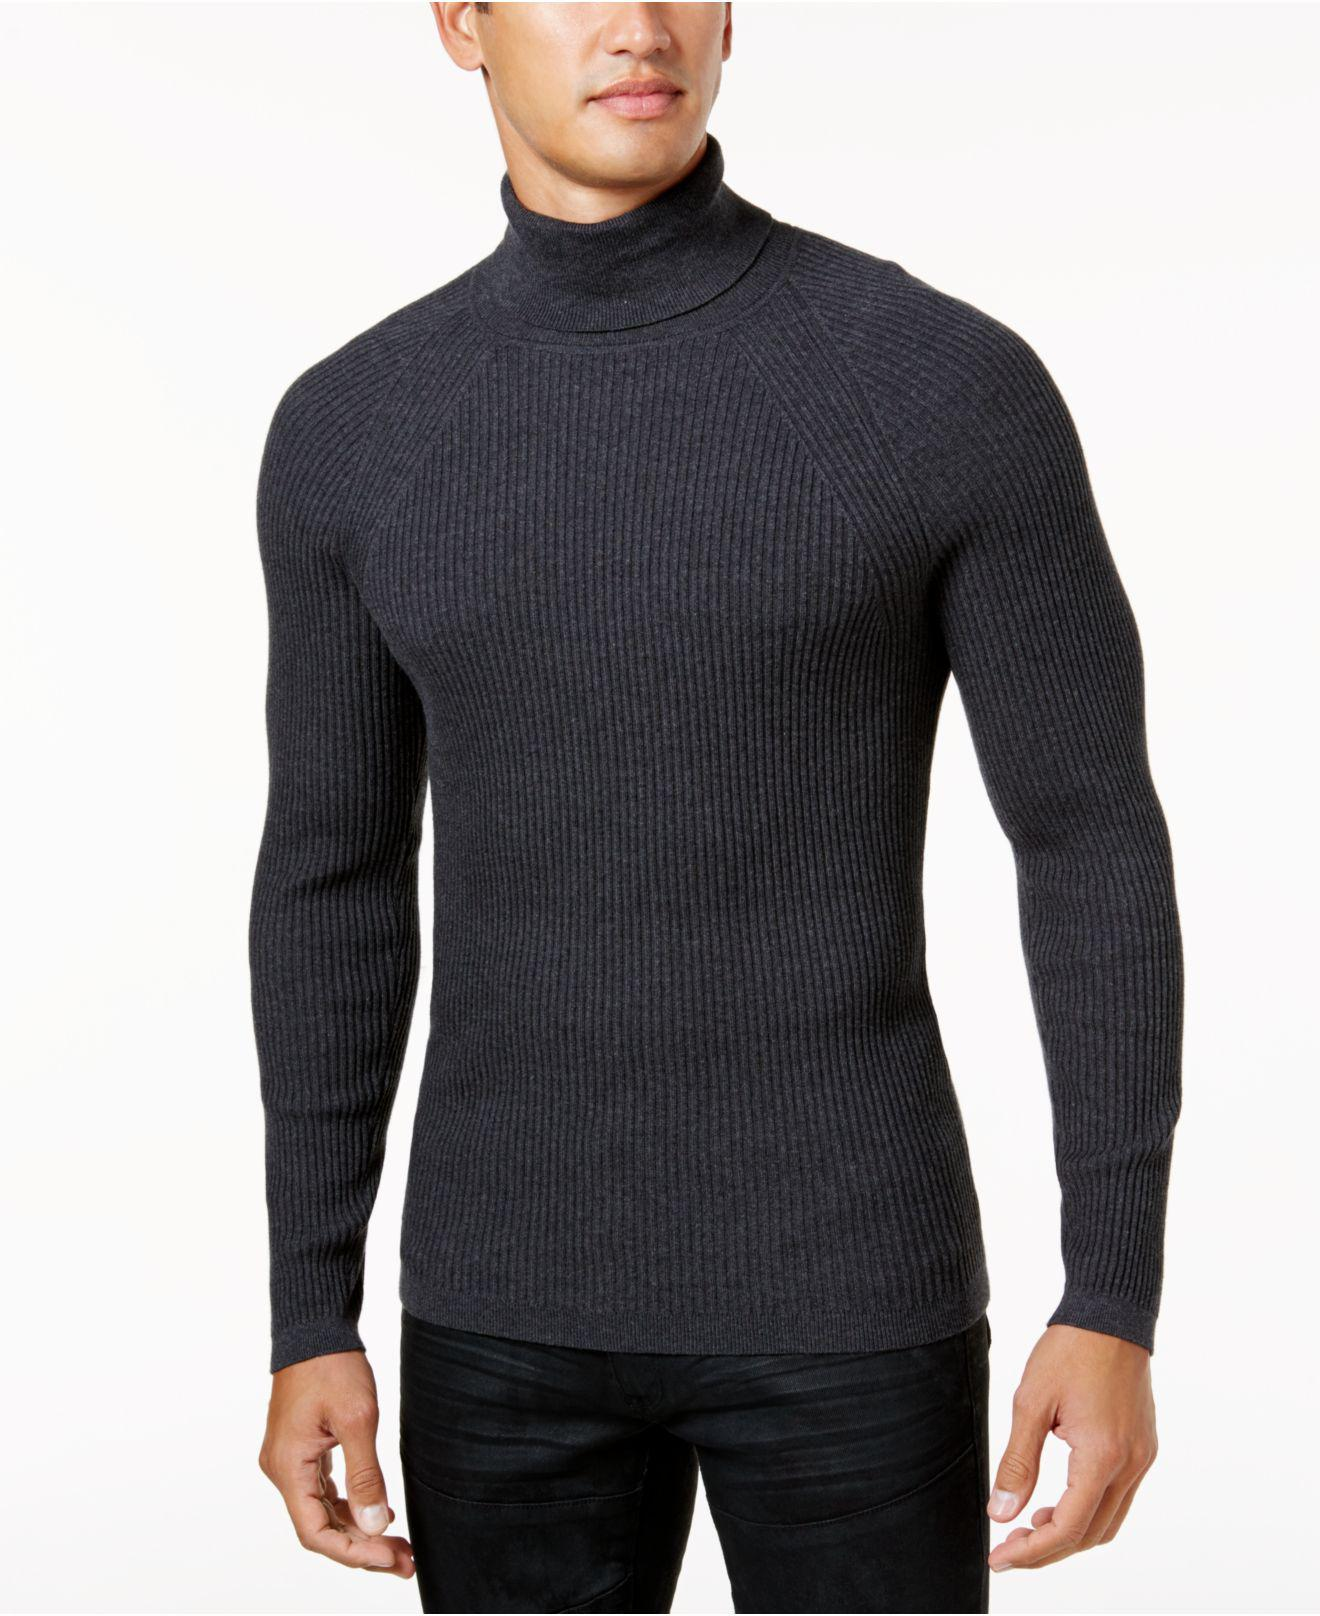 Inc international concepts Men's Ribbed Turtleneck Sweater in Blue ...